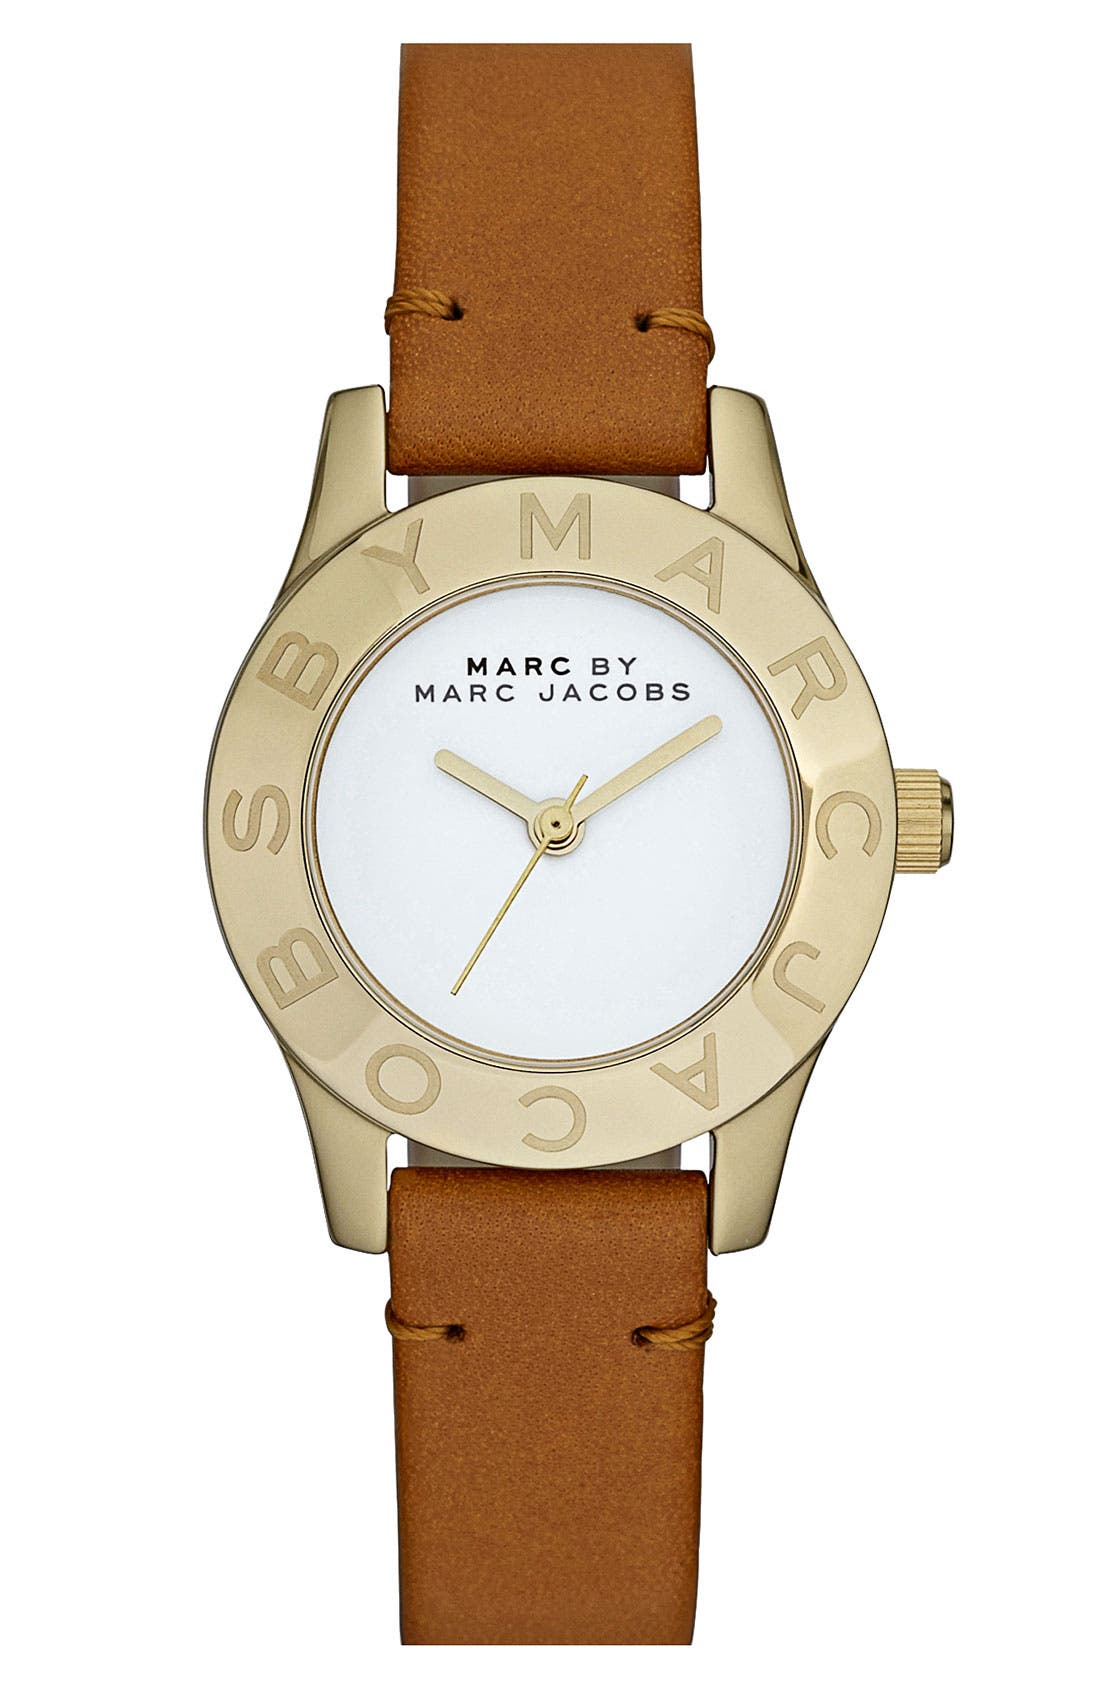 Main Image - MARC BY MARC JACOBS 'Small Blade' Leather Strap Watch, 26mm